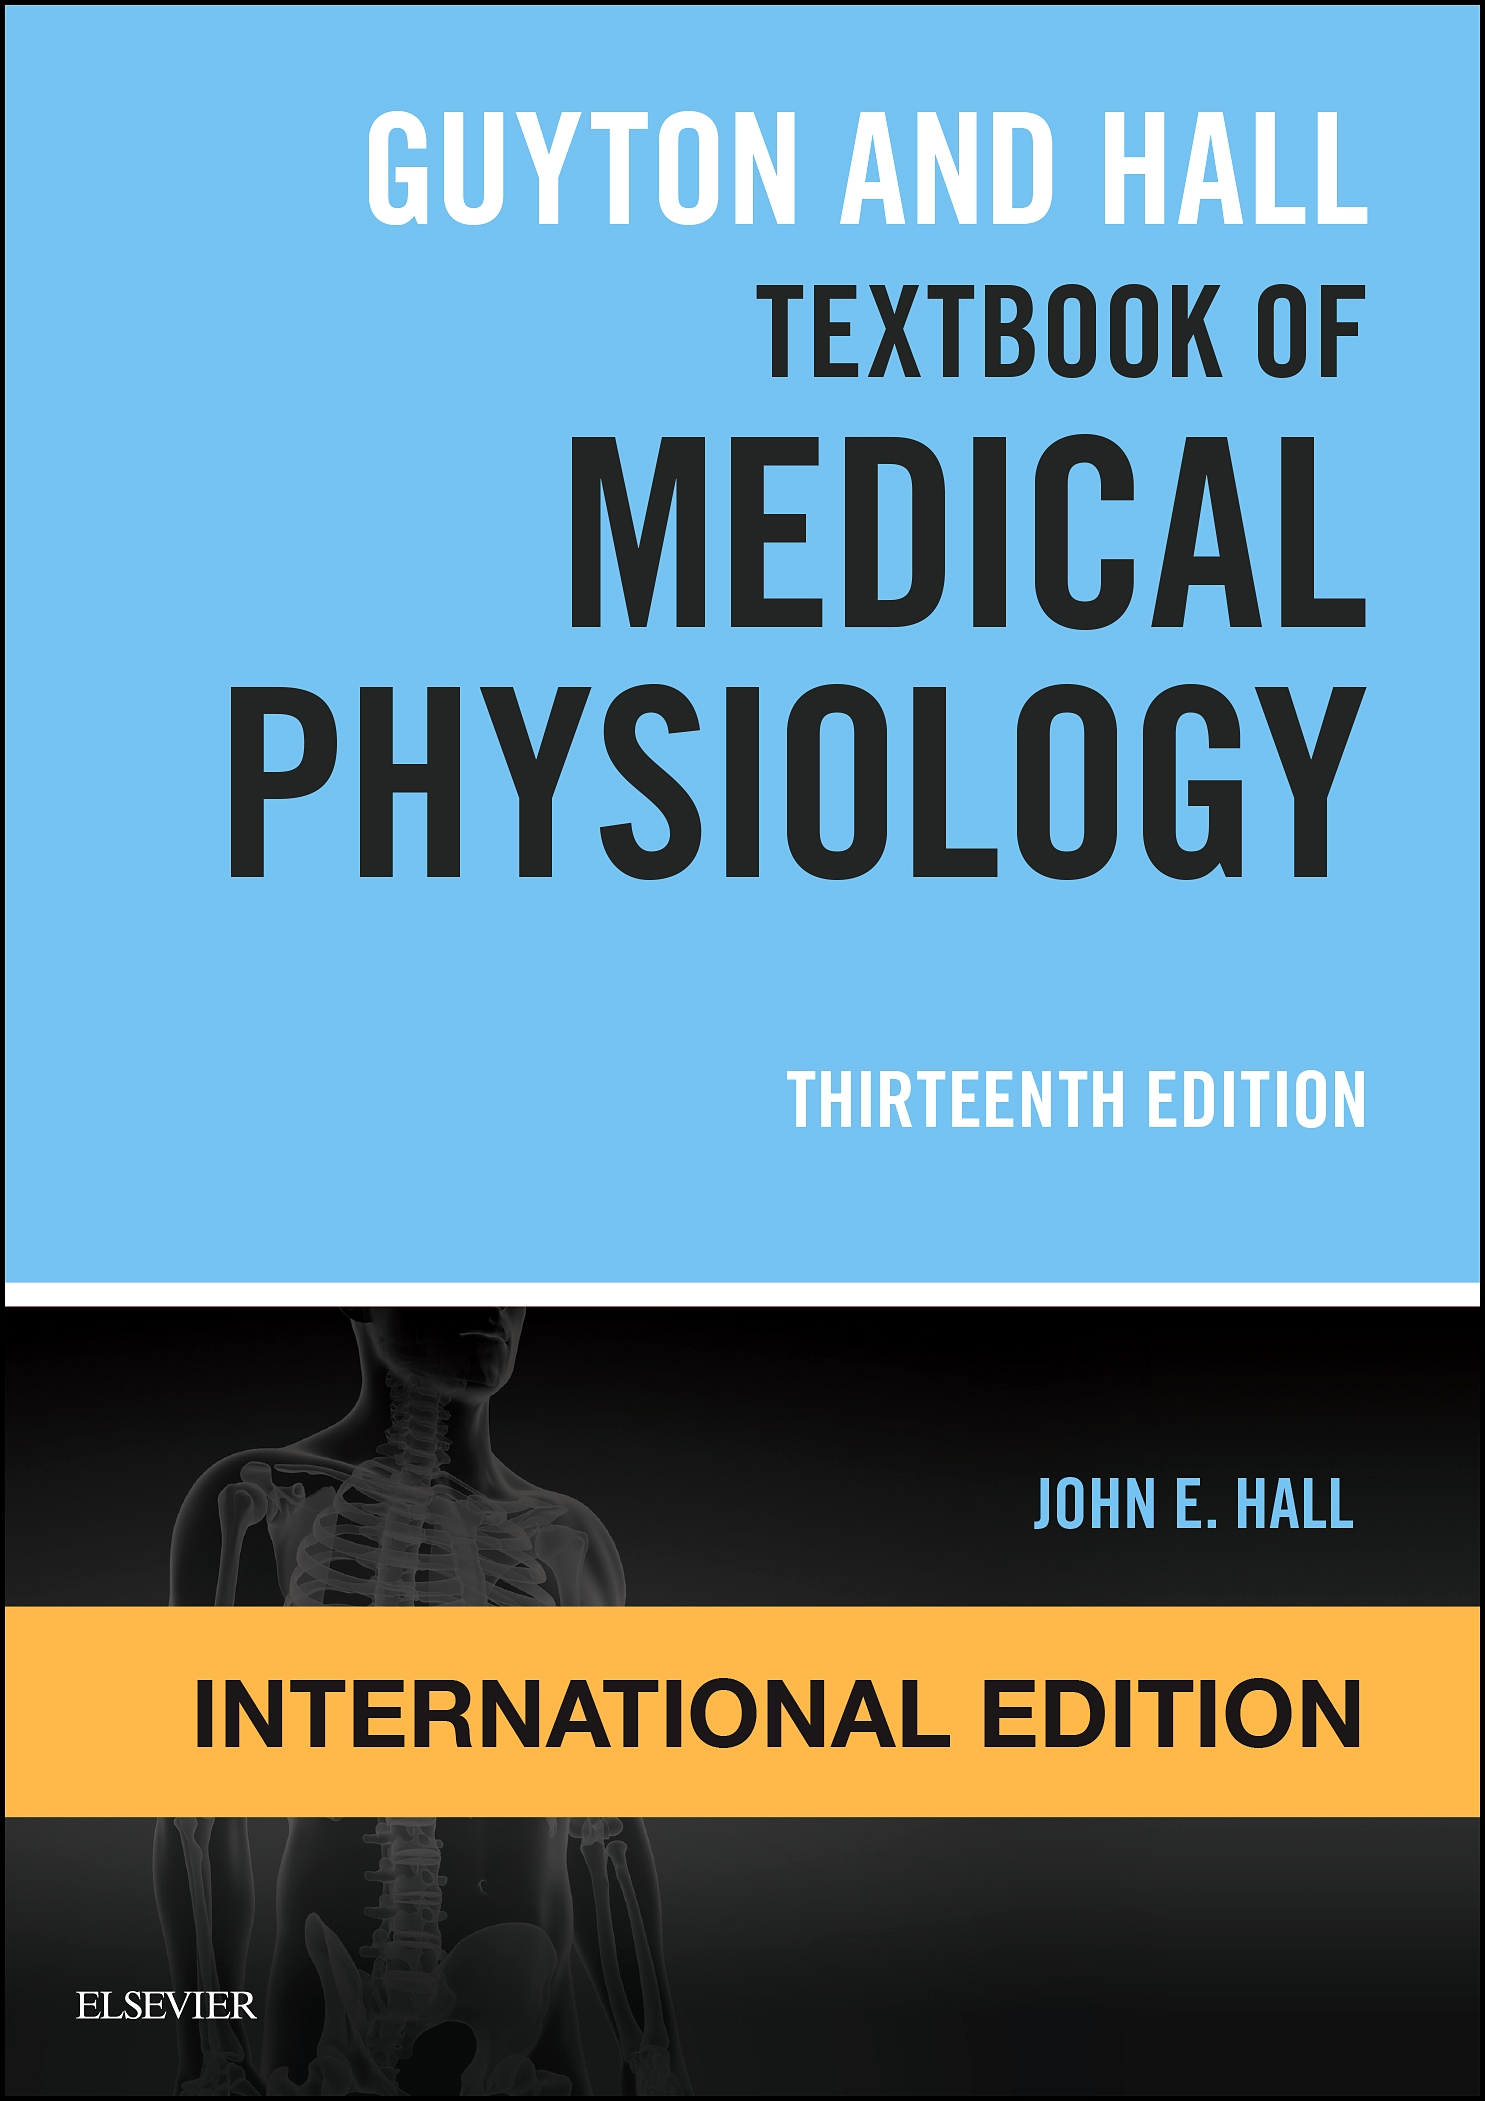 Guyton and Hall Textbook of Medical Physiology, International Edition